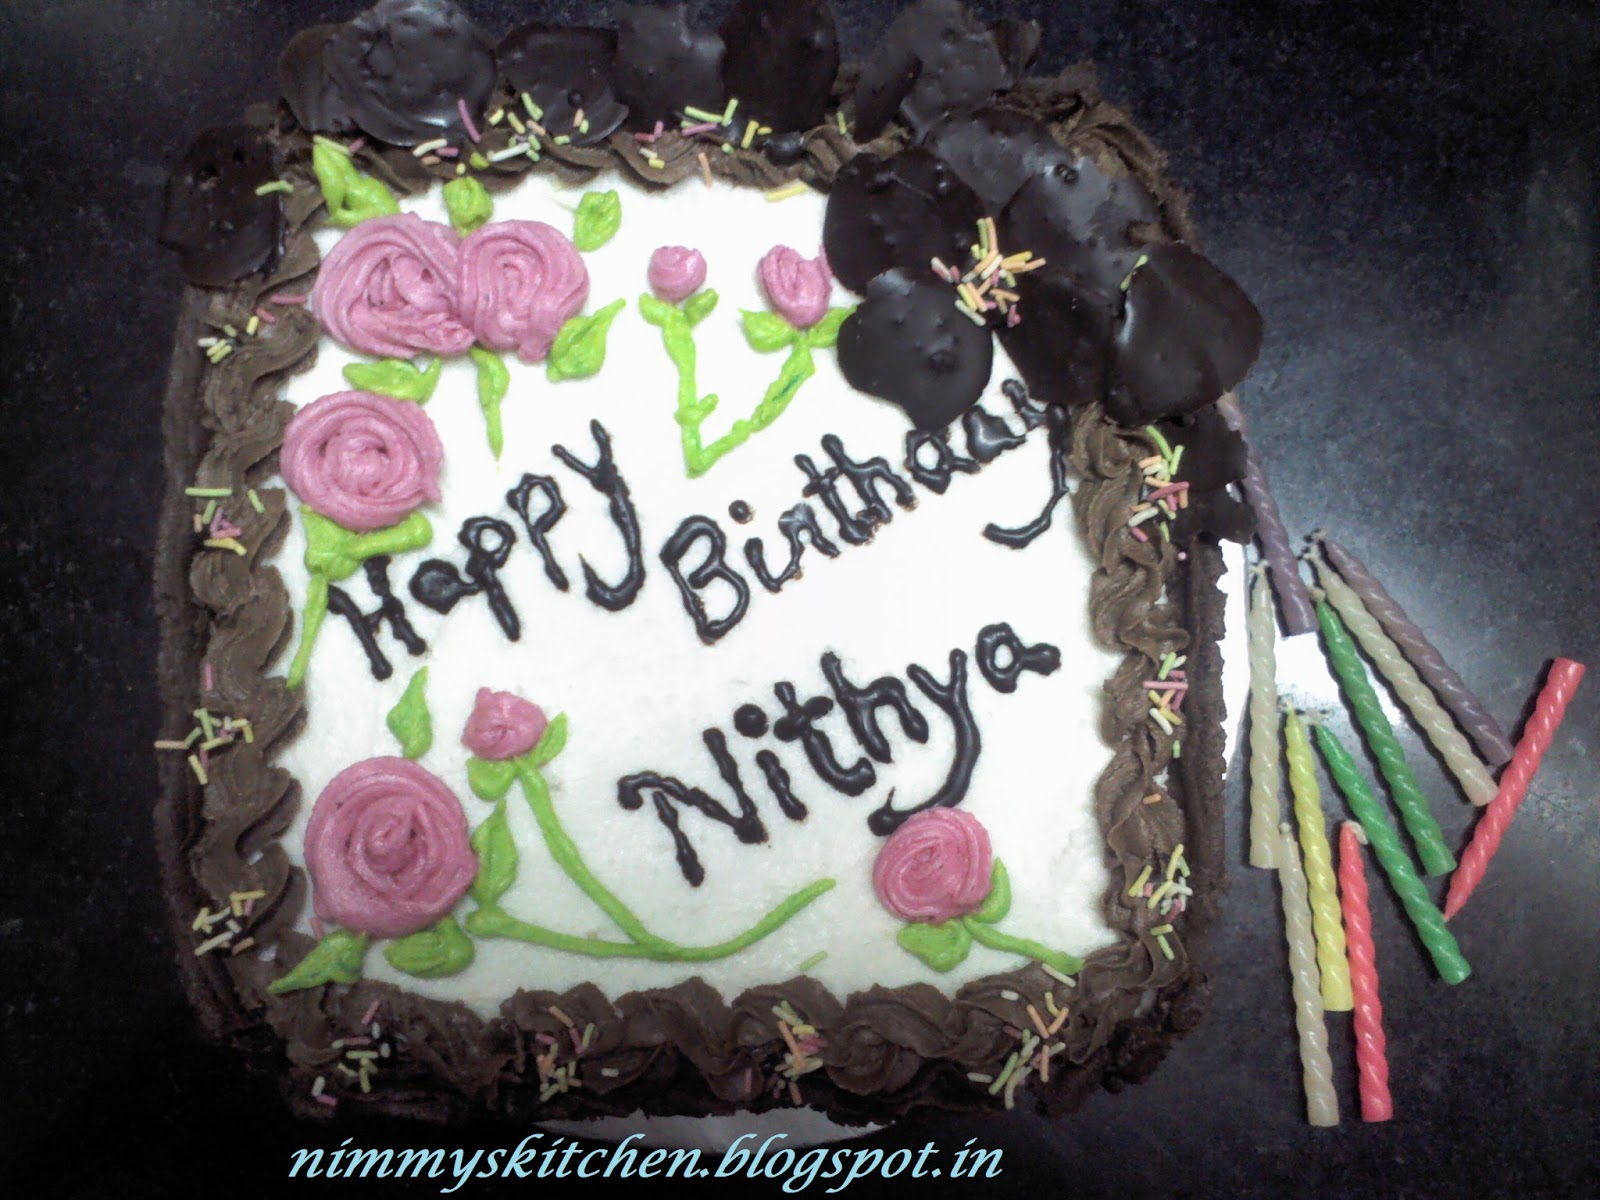 Heres Some Snaps Of The Birthday Cake That I Made Hope You Will Enjoy Watching Them